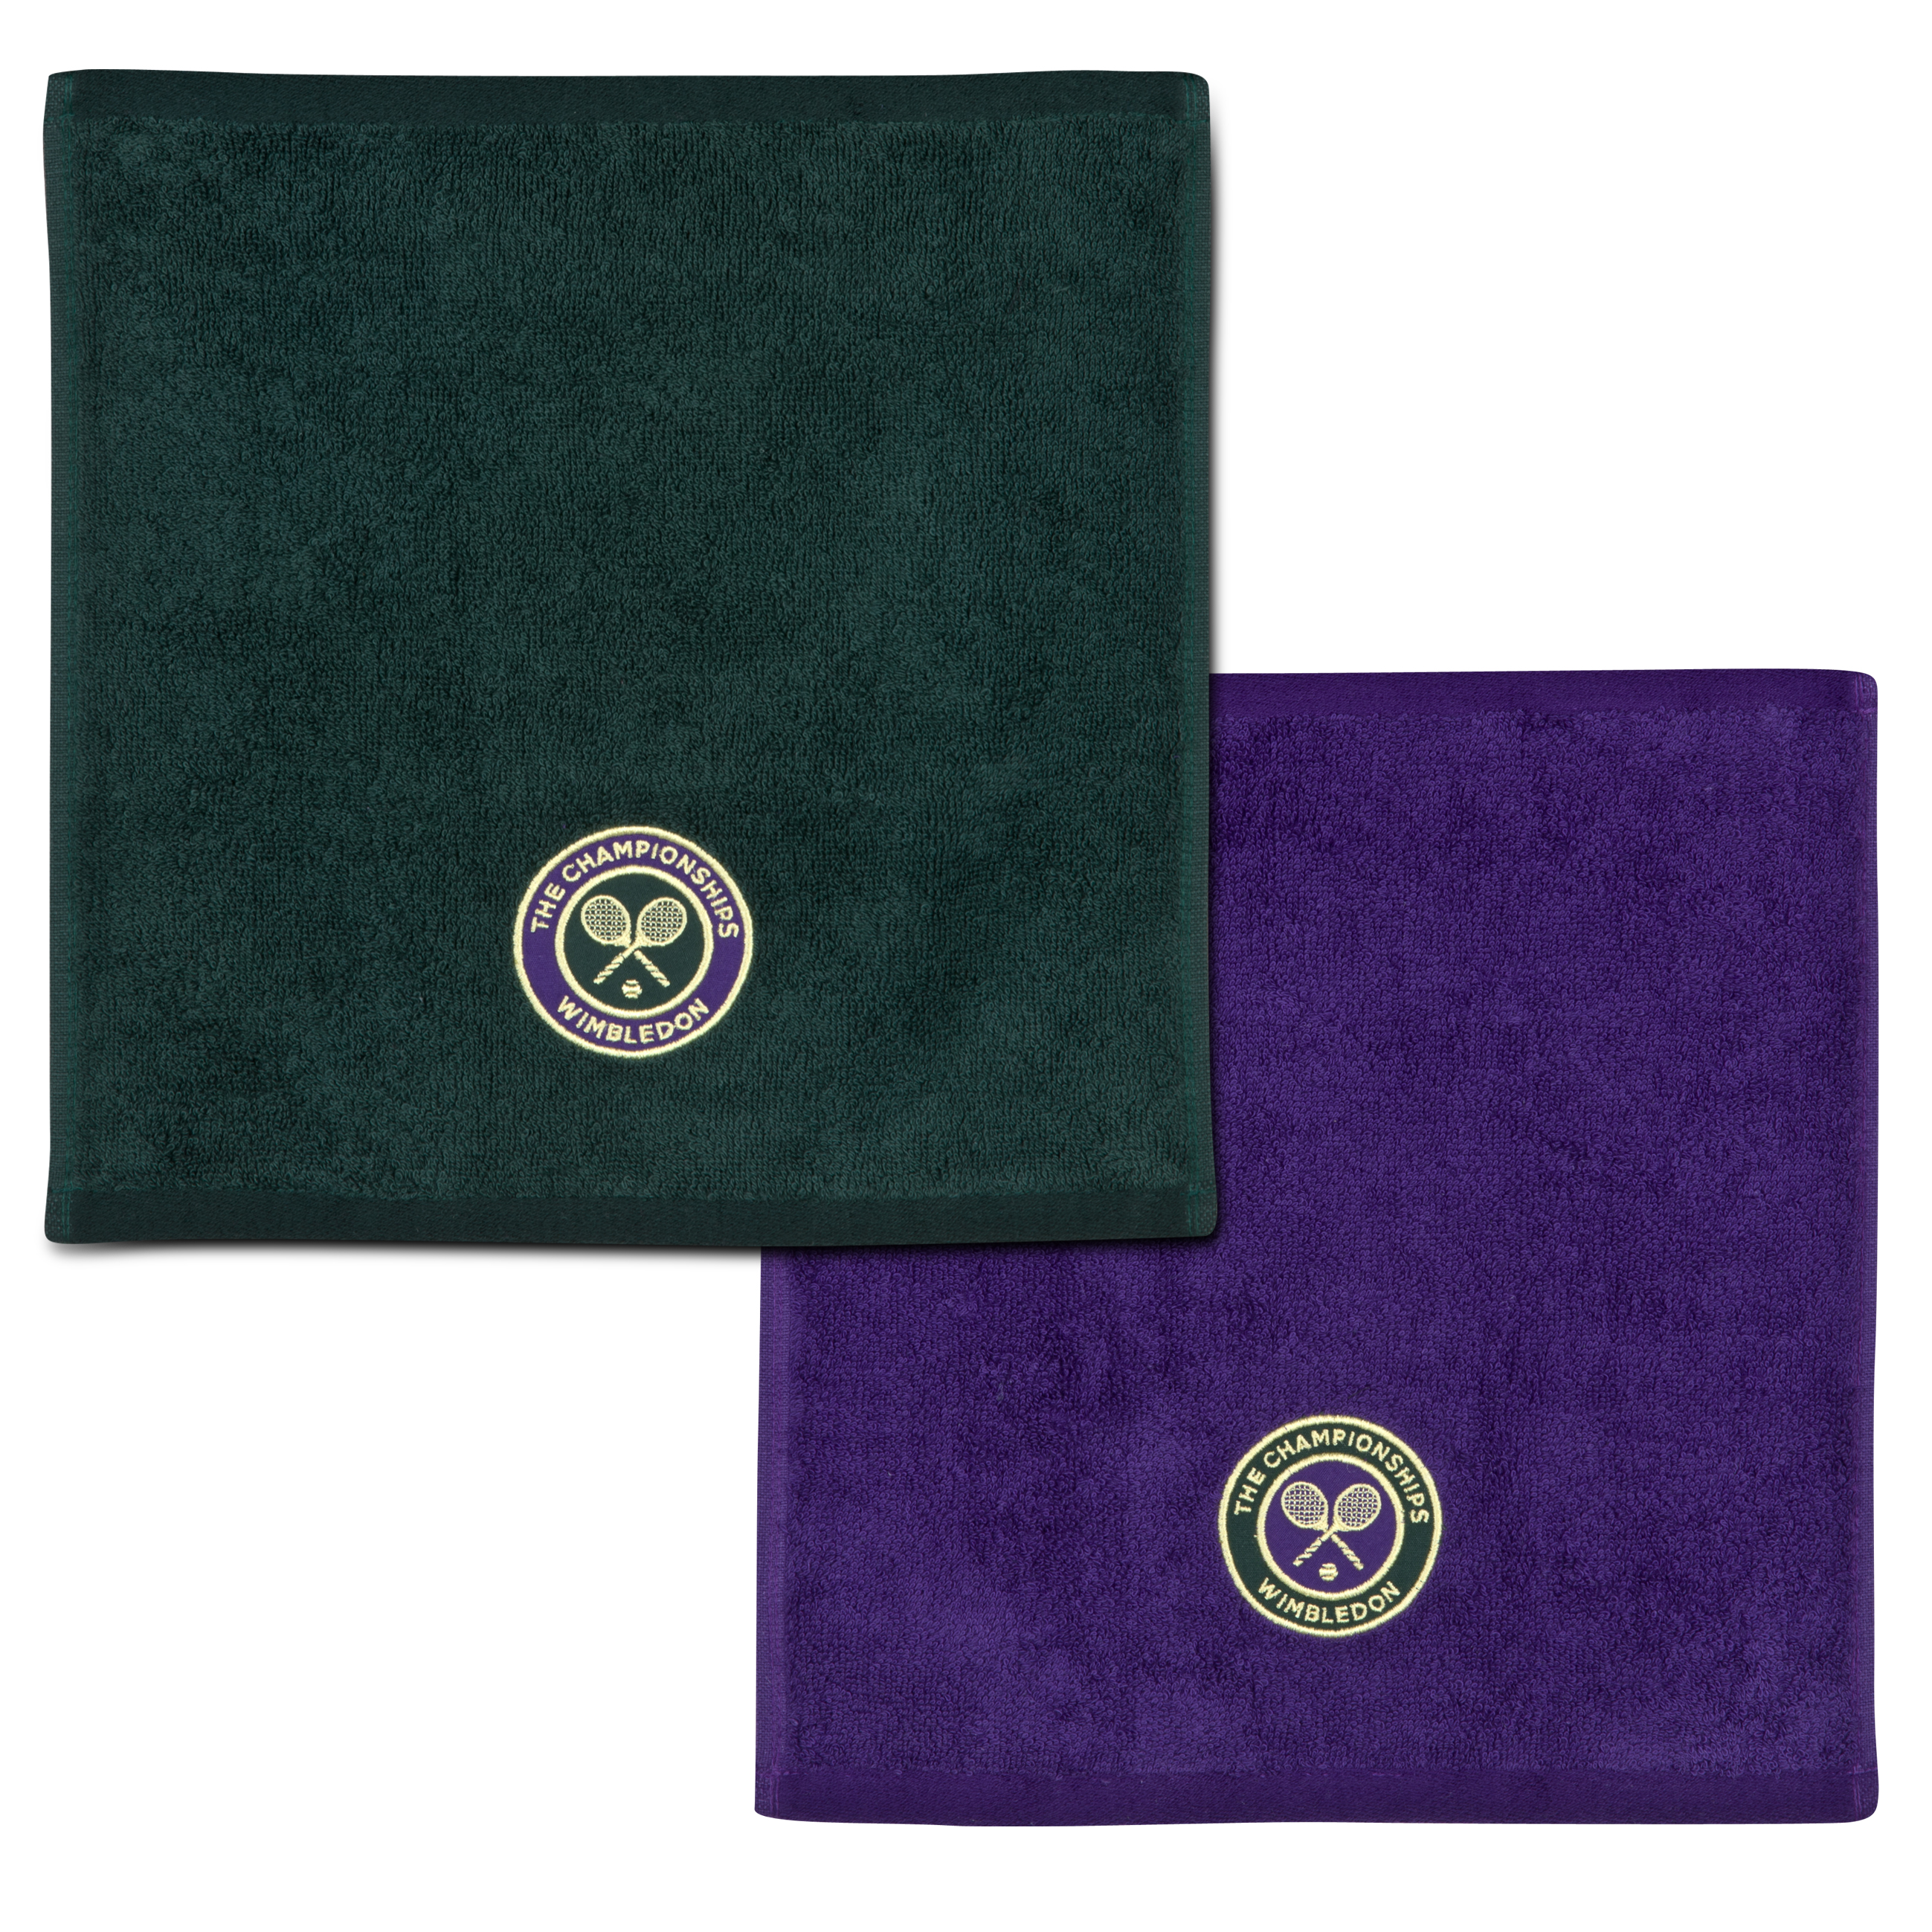 Wimbledon Mens Face Cloth Double Pack - Green/Purple